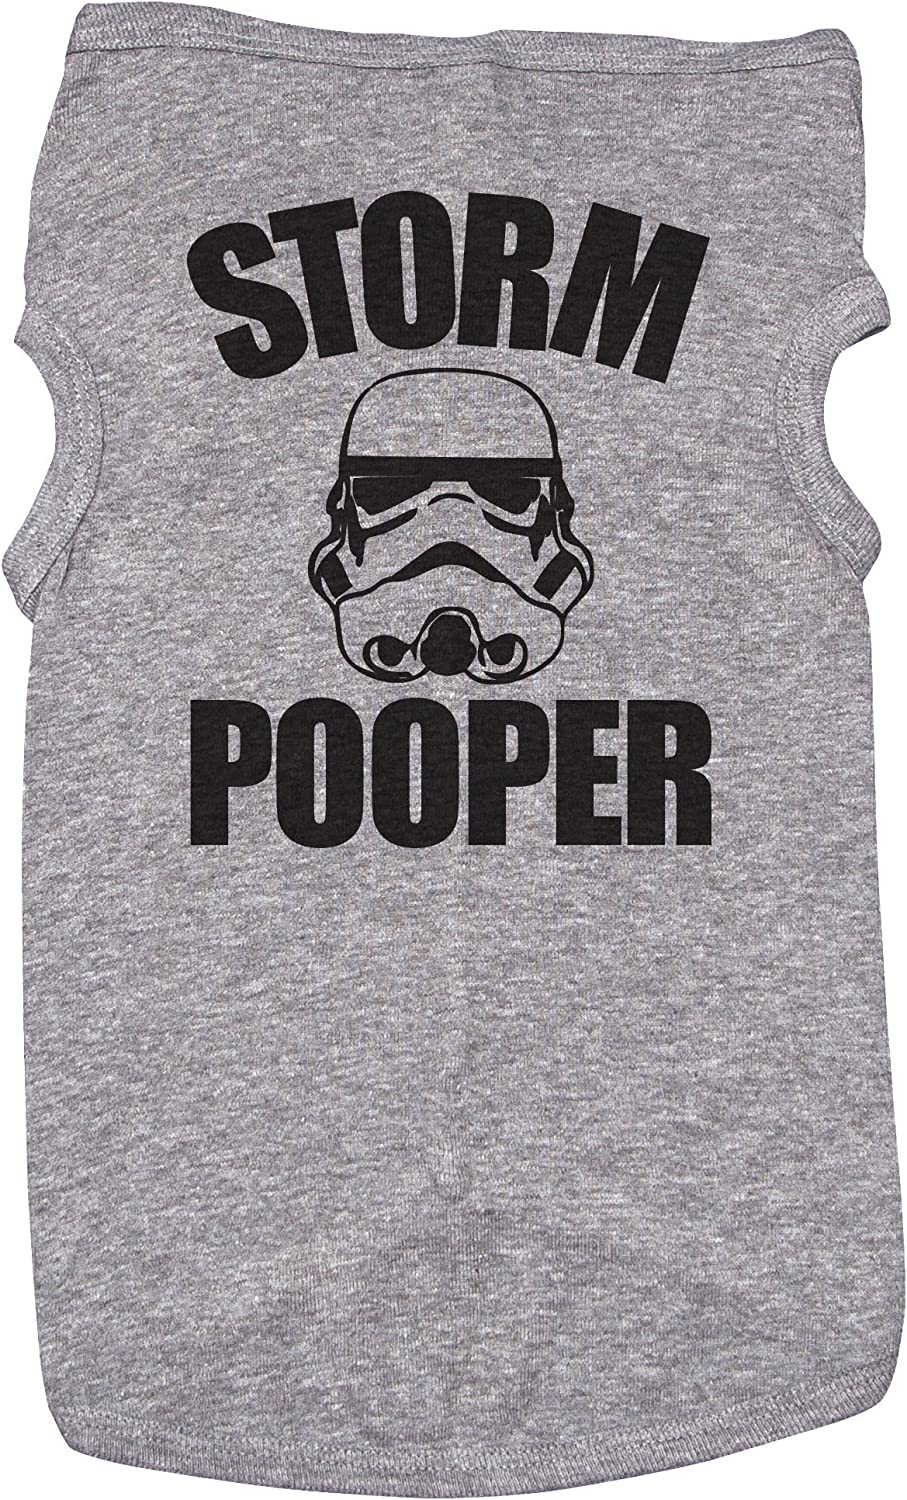 Baffle Star Wars Shirt for Dogs Storm Pooper Grey Puppy Tee (XL)